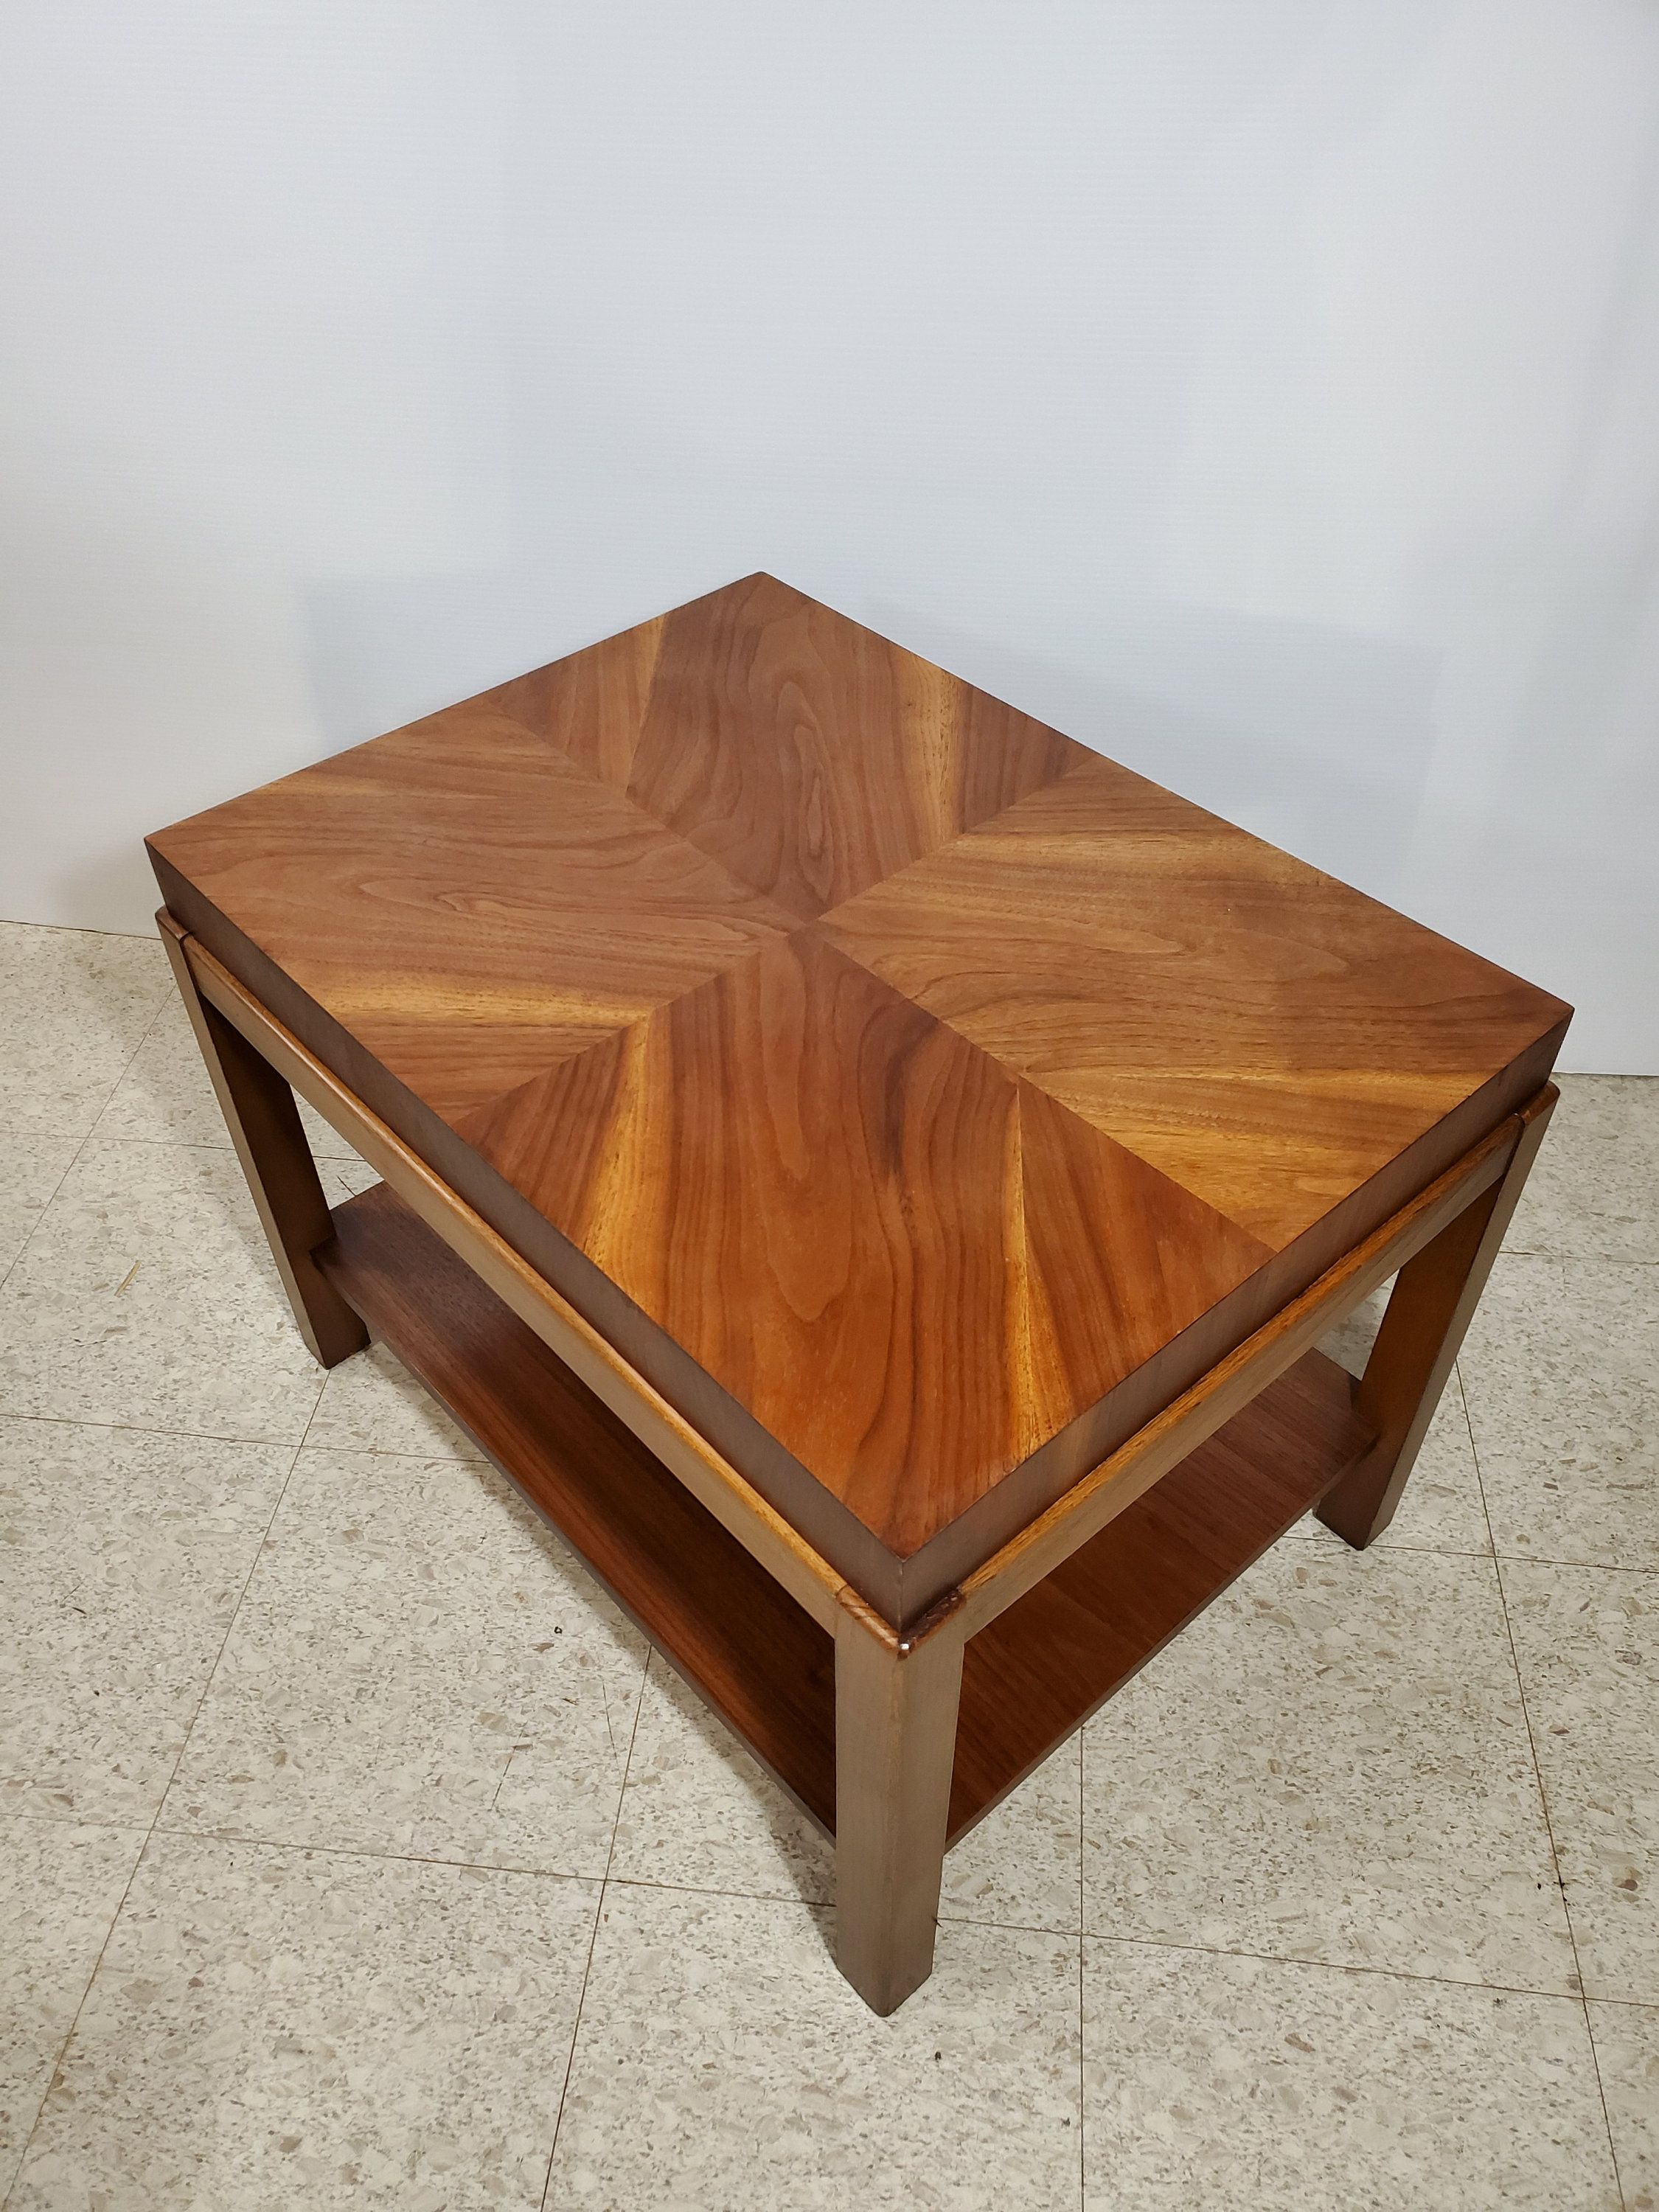 Midcentury Modern Book Matched Grain Lane Furniture Side Table Refinished Top Coffee Table Wood Cherry Wood Coffee Table Coffee Table [ 3000 x 2250 Pixel ]